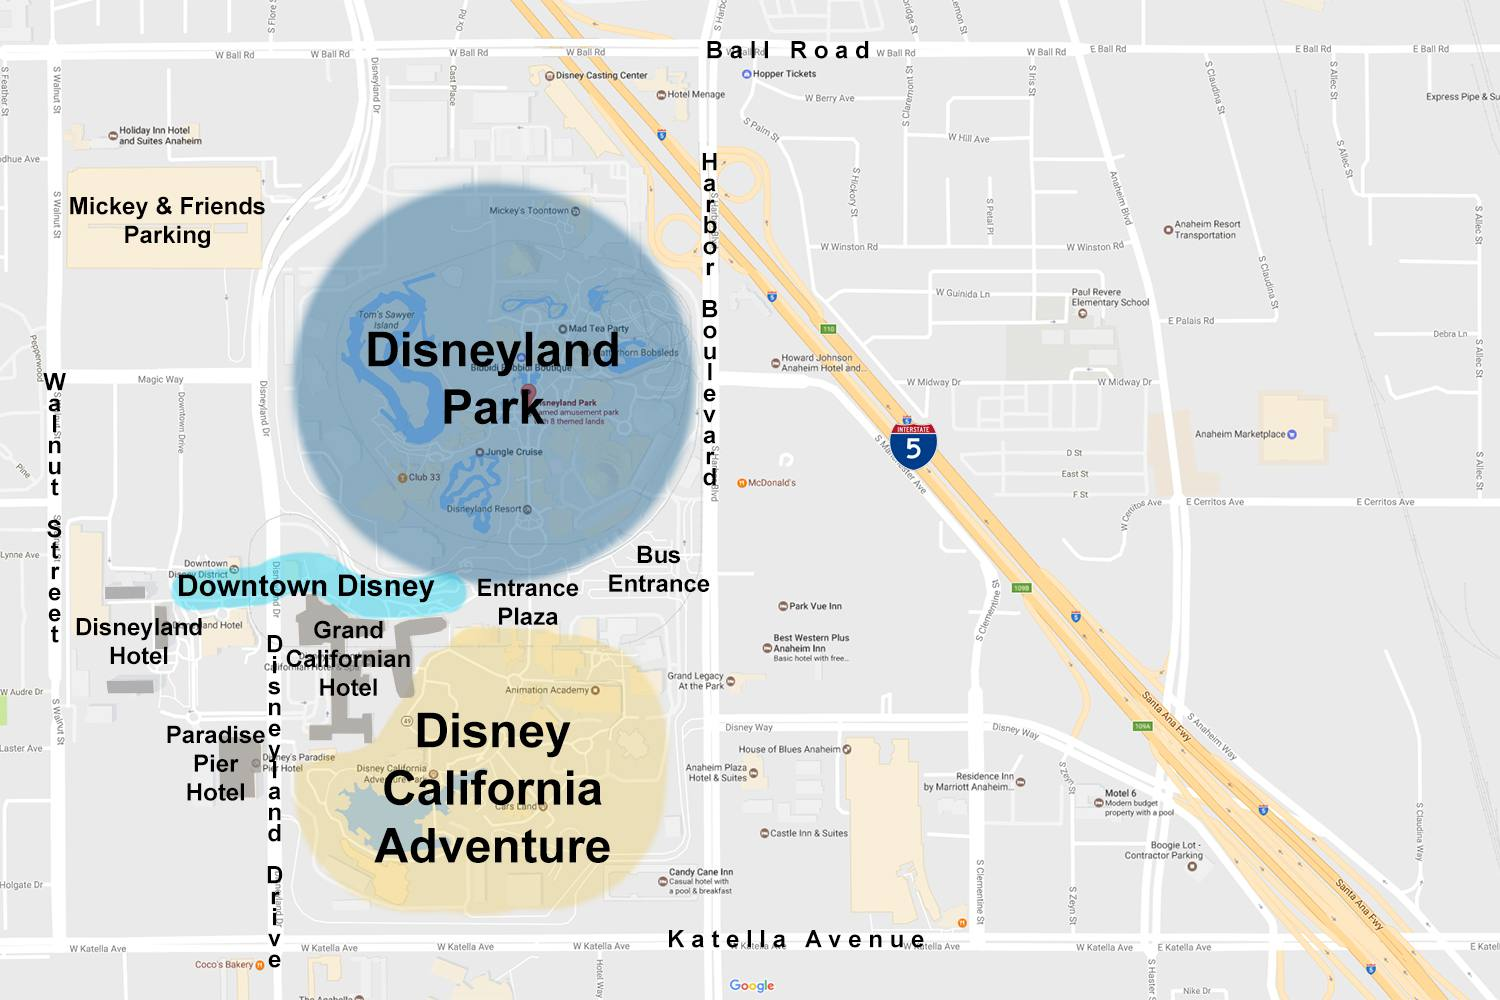 Disneyland Resort Map Maps of the Disneyland Resort